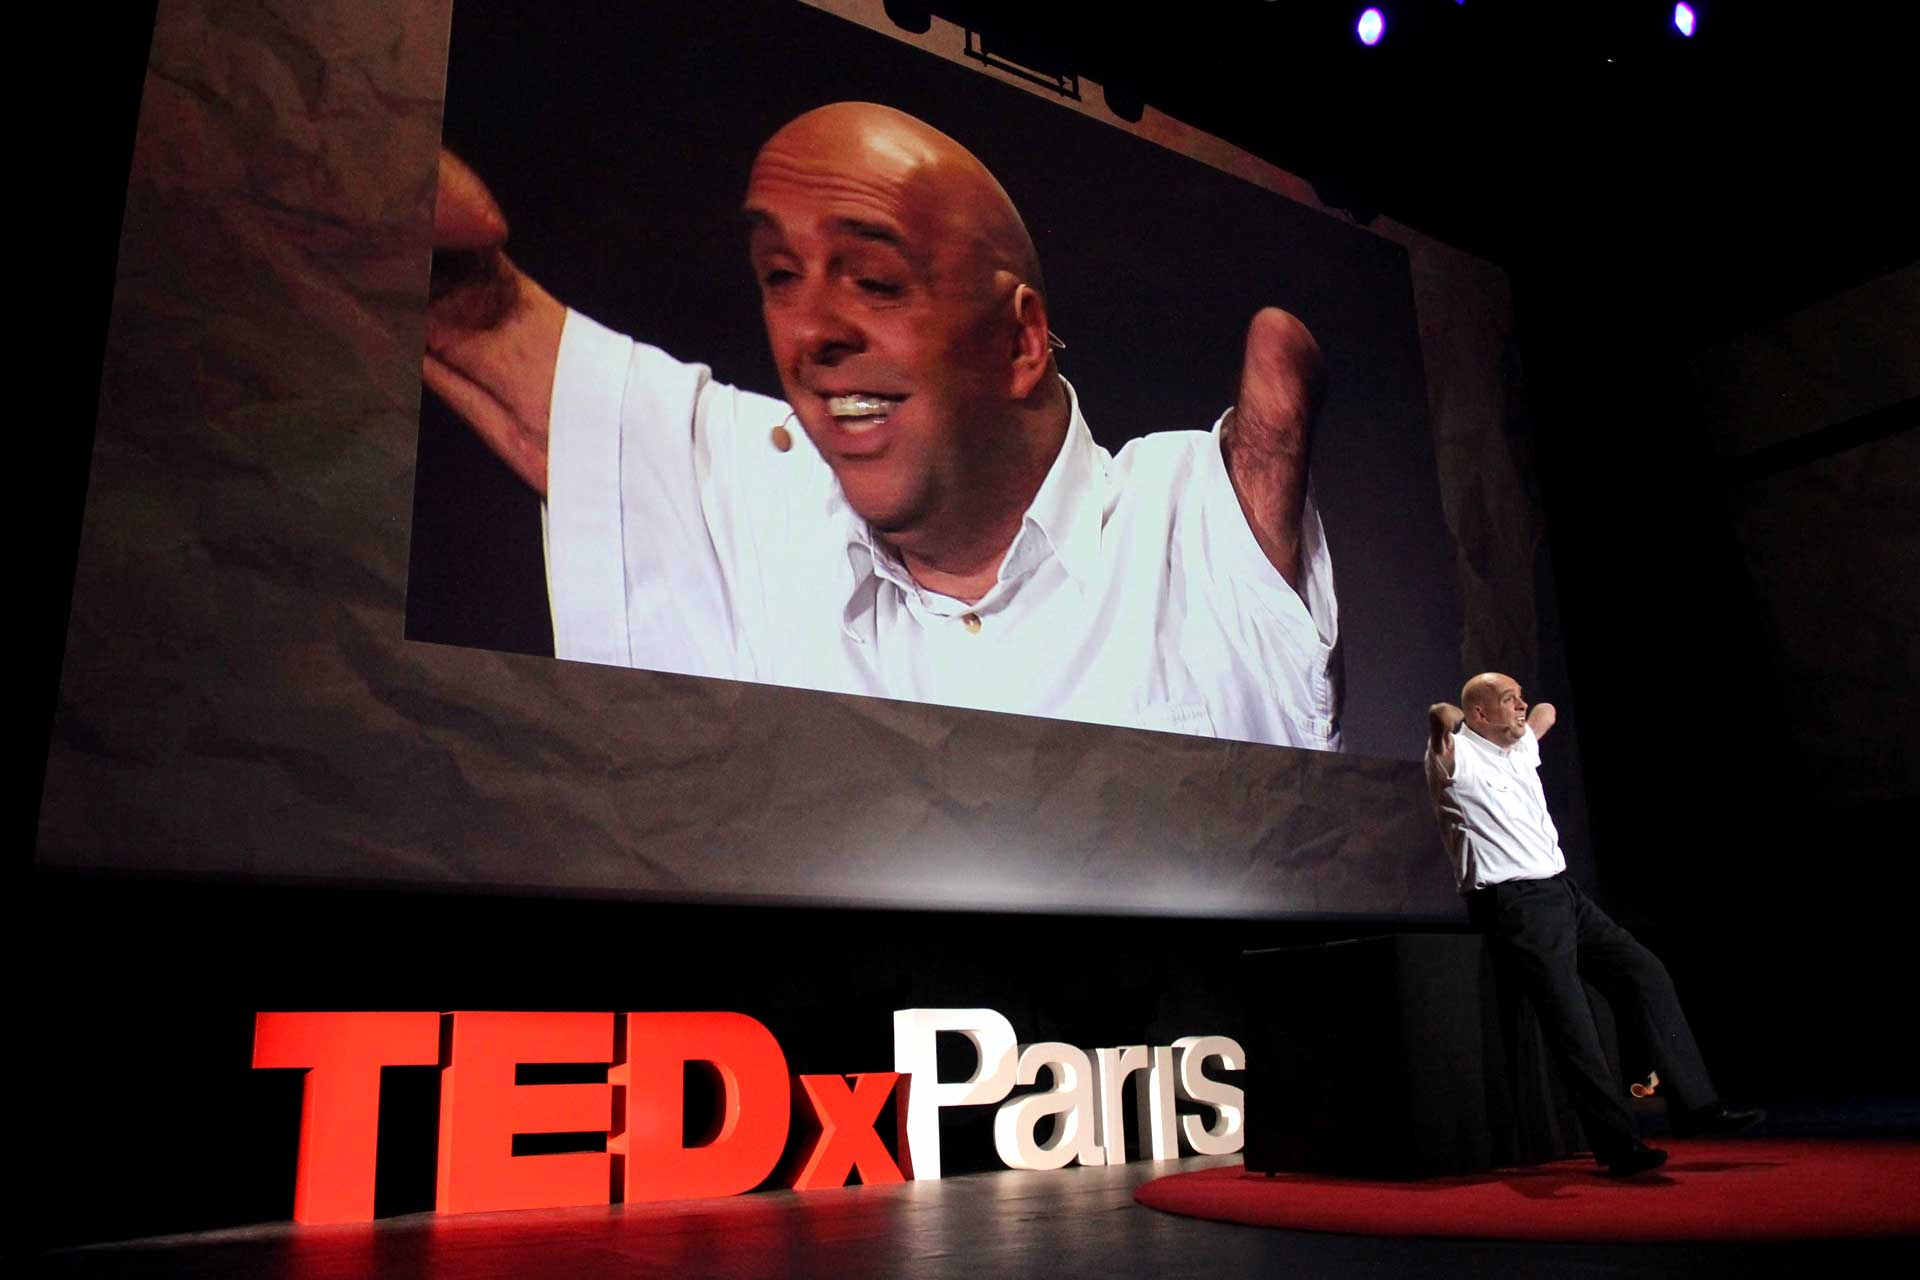 conference-TEDxParis-2013-14.jpg